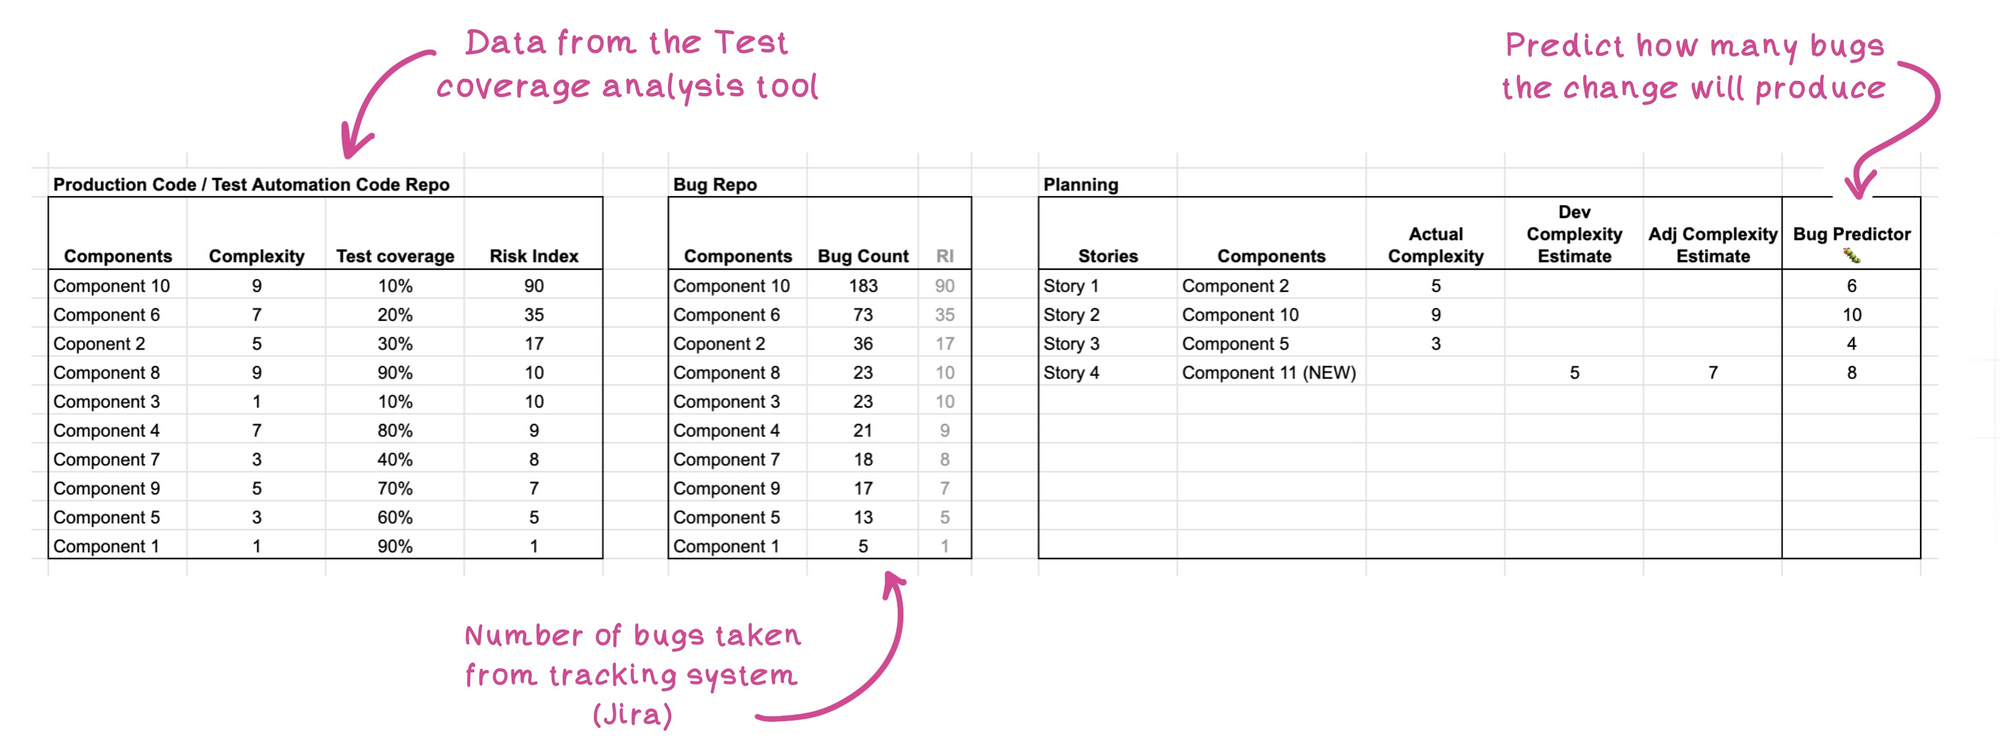 Eliana created this mockup spreadsheet to share with us the basic structure of her planning methodology